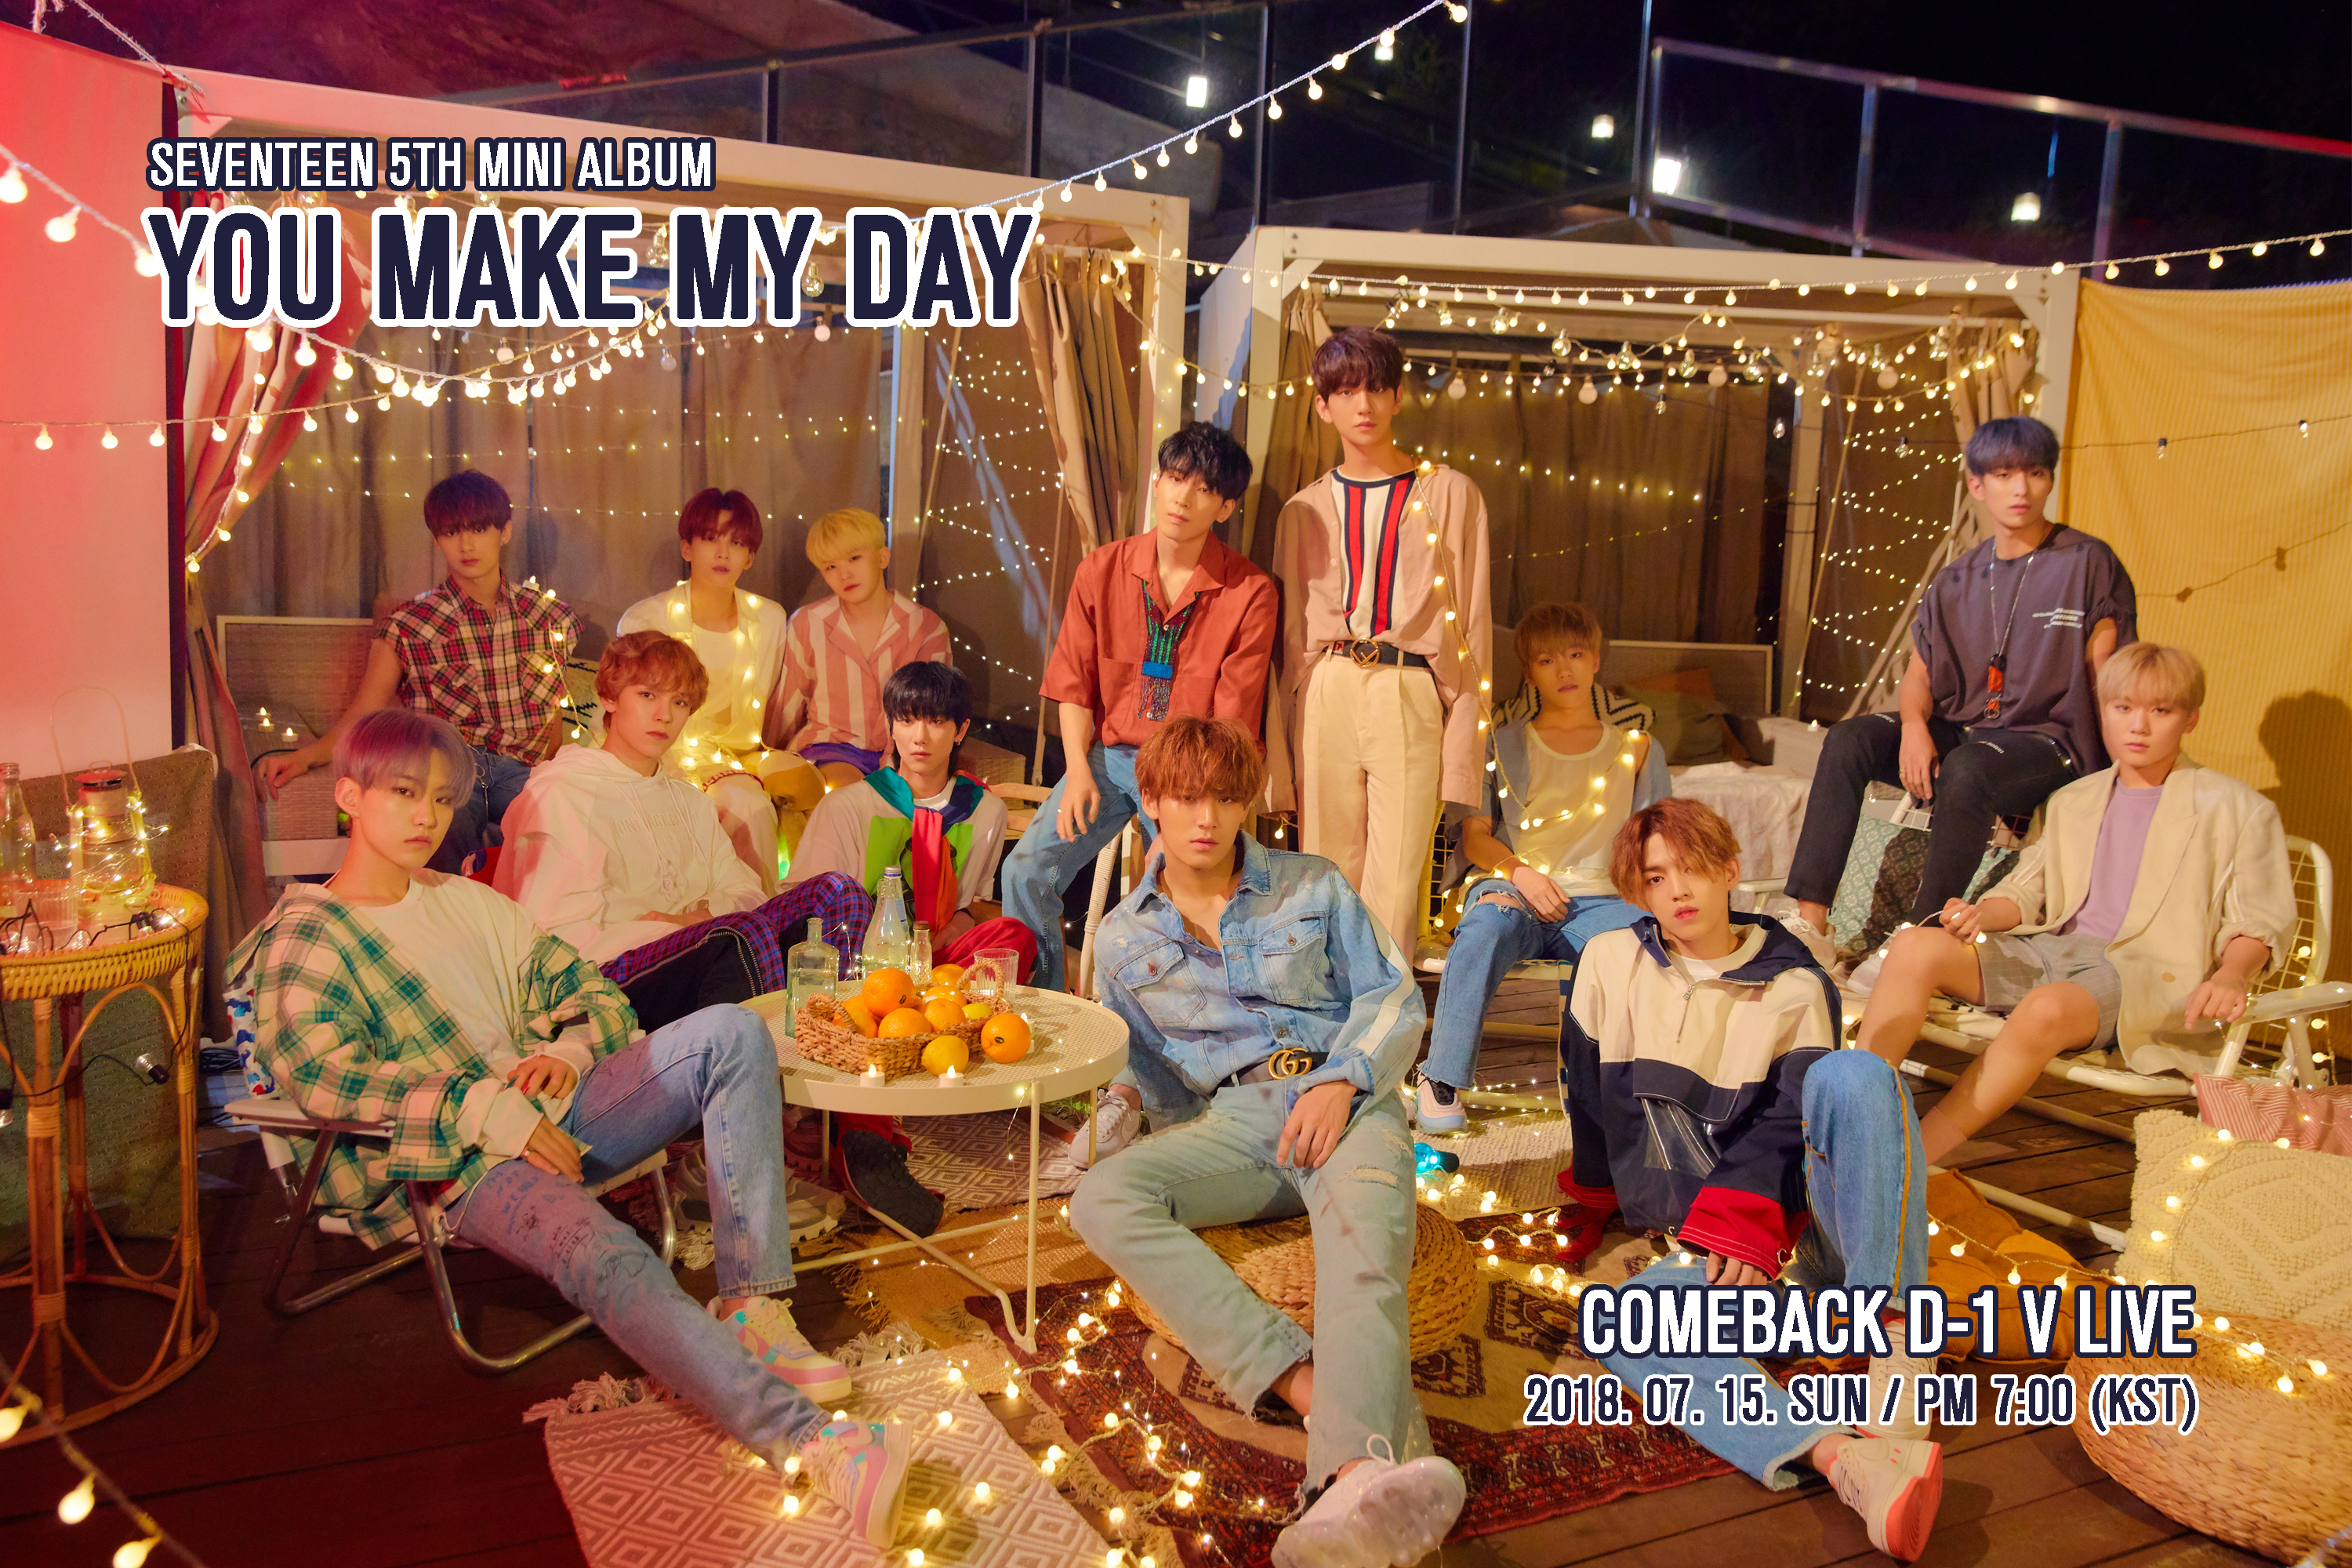 SEVENTEEN 5TH MINI ALBUM 'YOU MAKE MY DAY' COMEBACK D-1 V LIVE